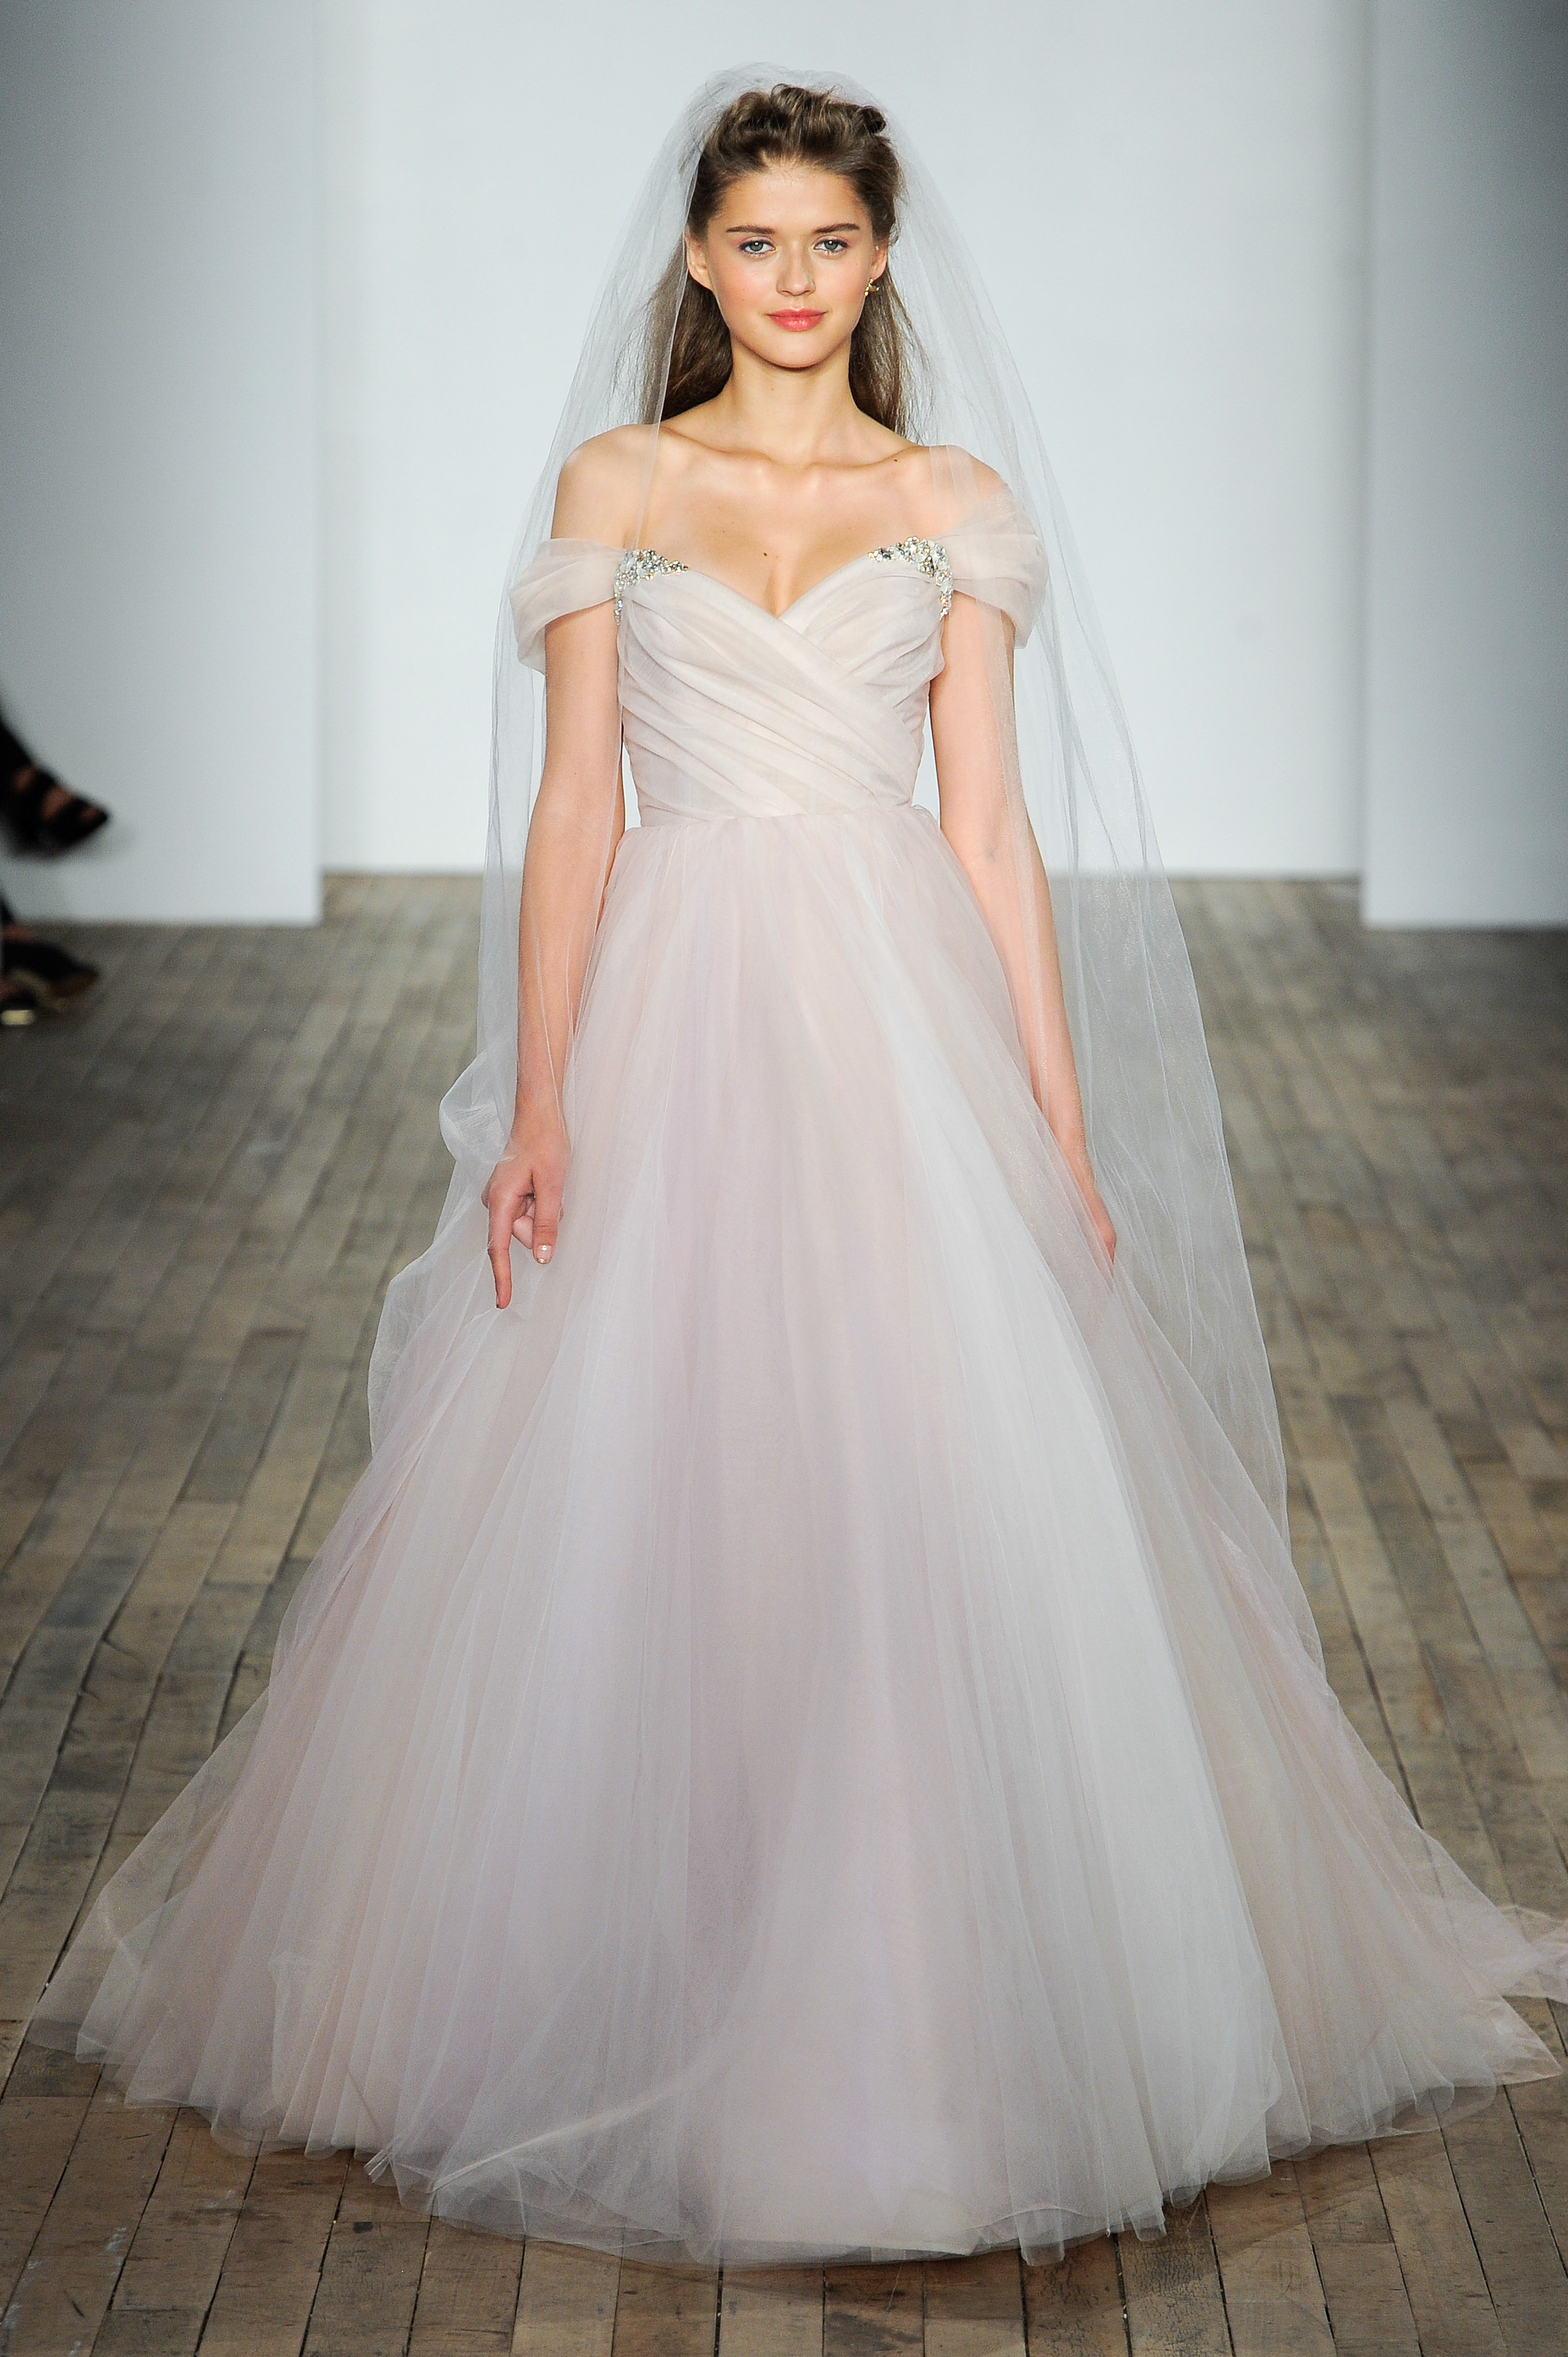 jlm blush by hayley paige wedding dress fall 2018 off-the-shoulder a-line pink